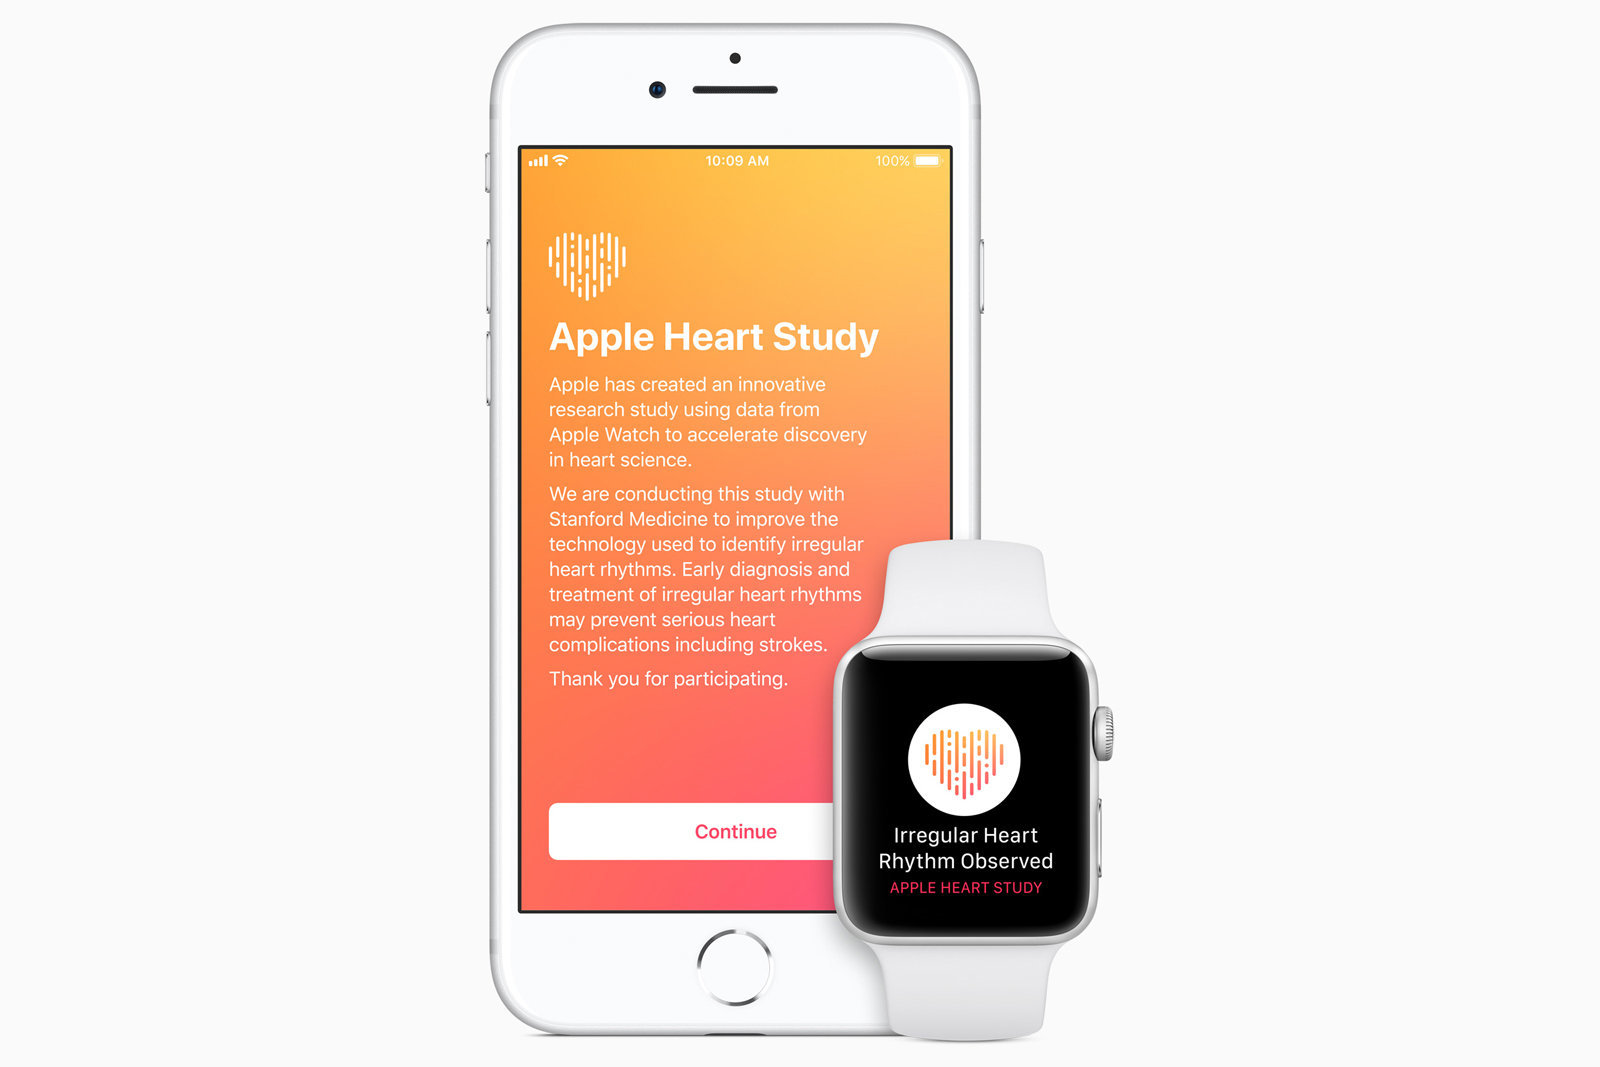 Latest Stanford's Apple Watch Study found irregular heartbeats in around 2,000 patients